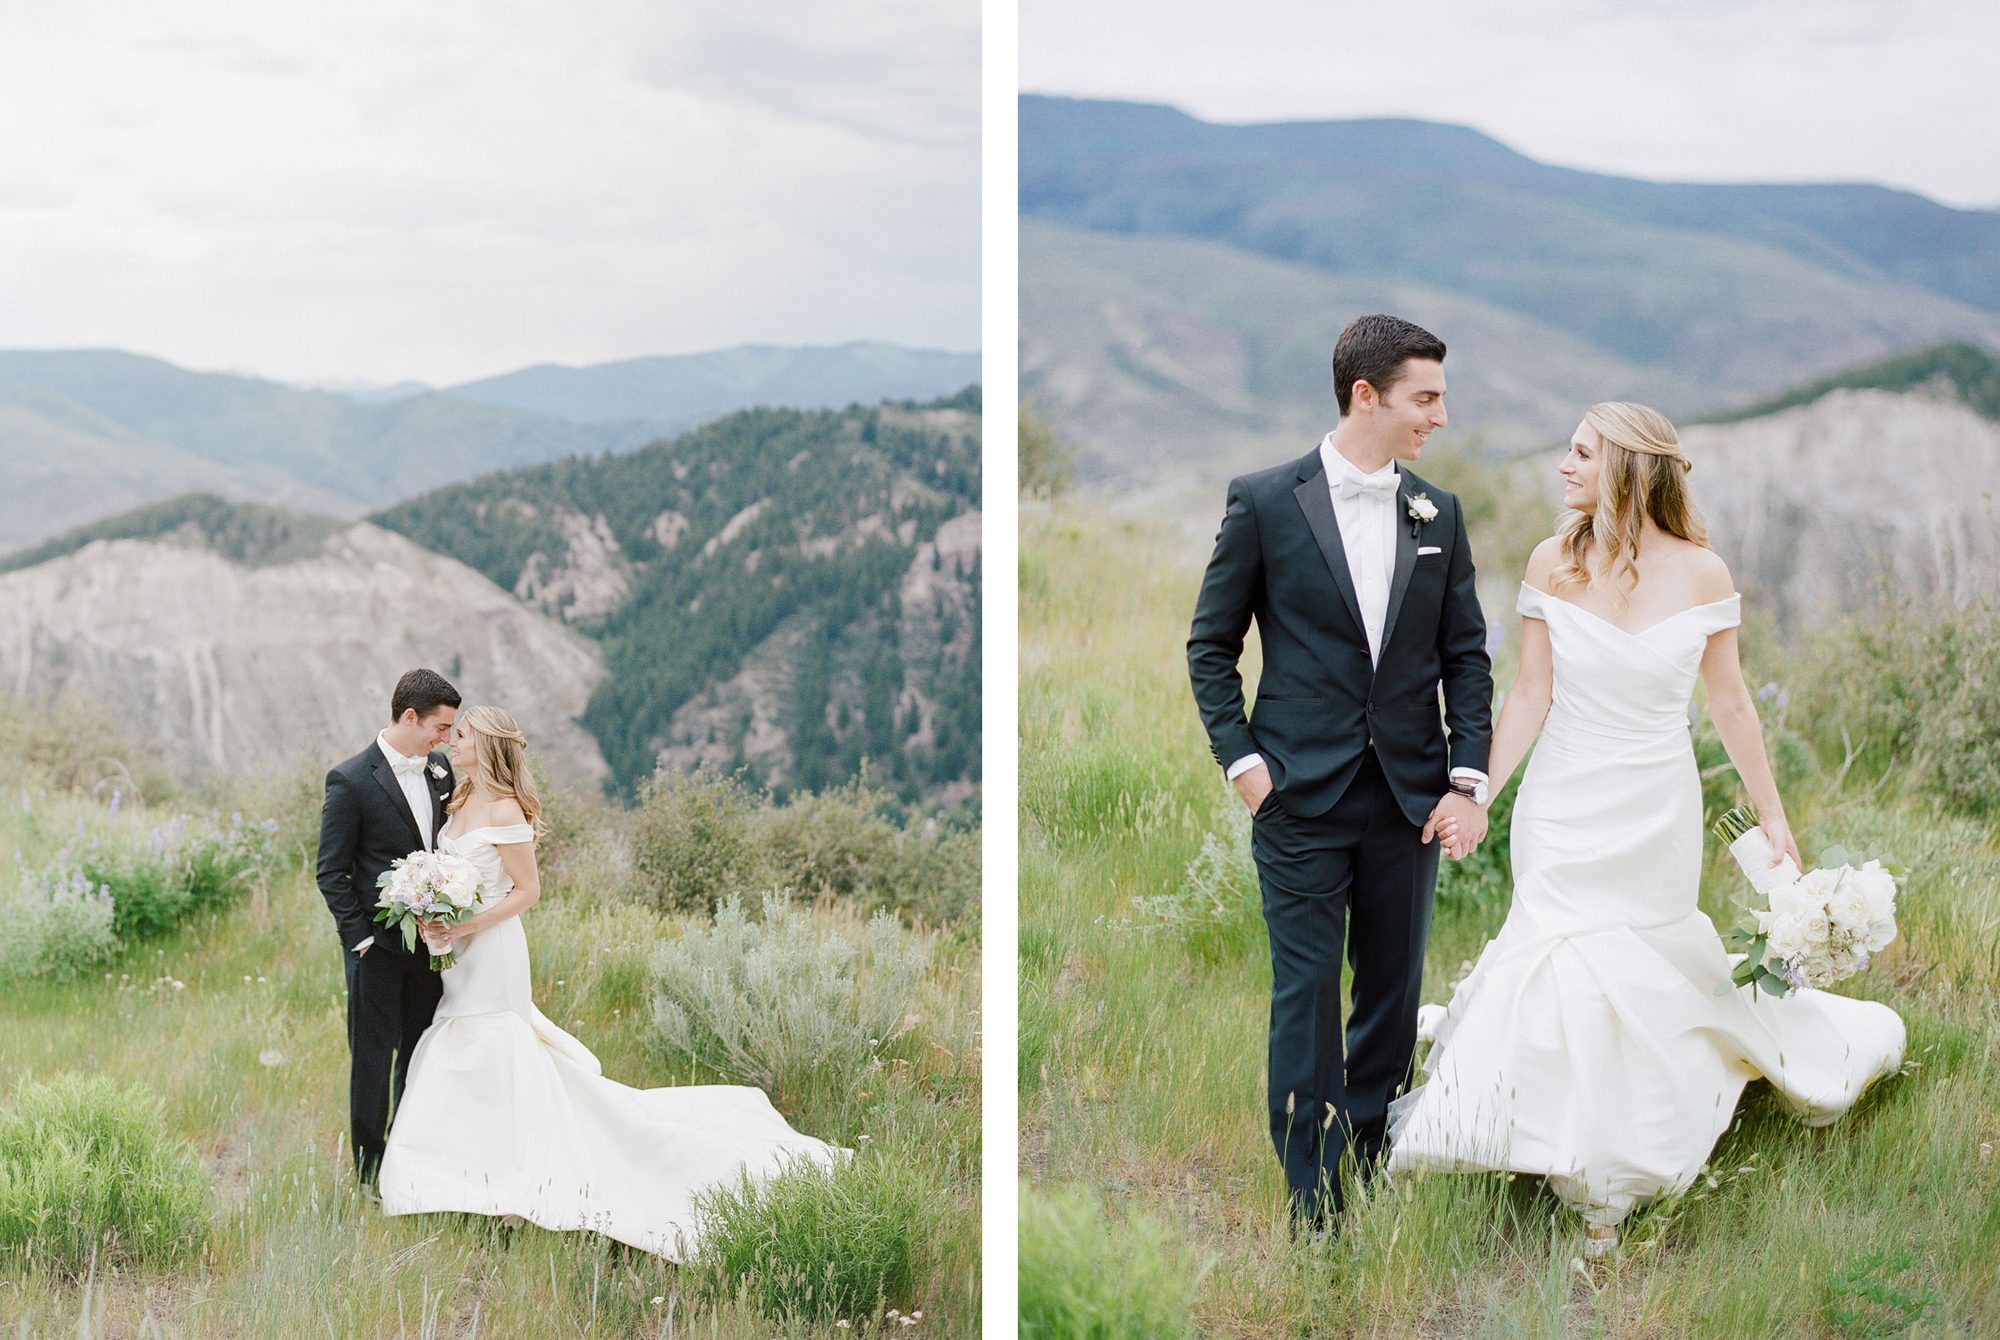 Bride & Groom in the Rocky Mountains of Beaver Creek, Colorado